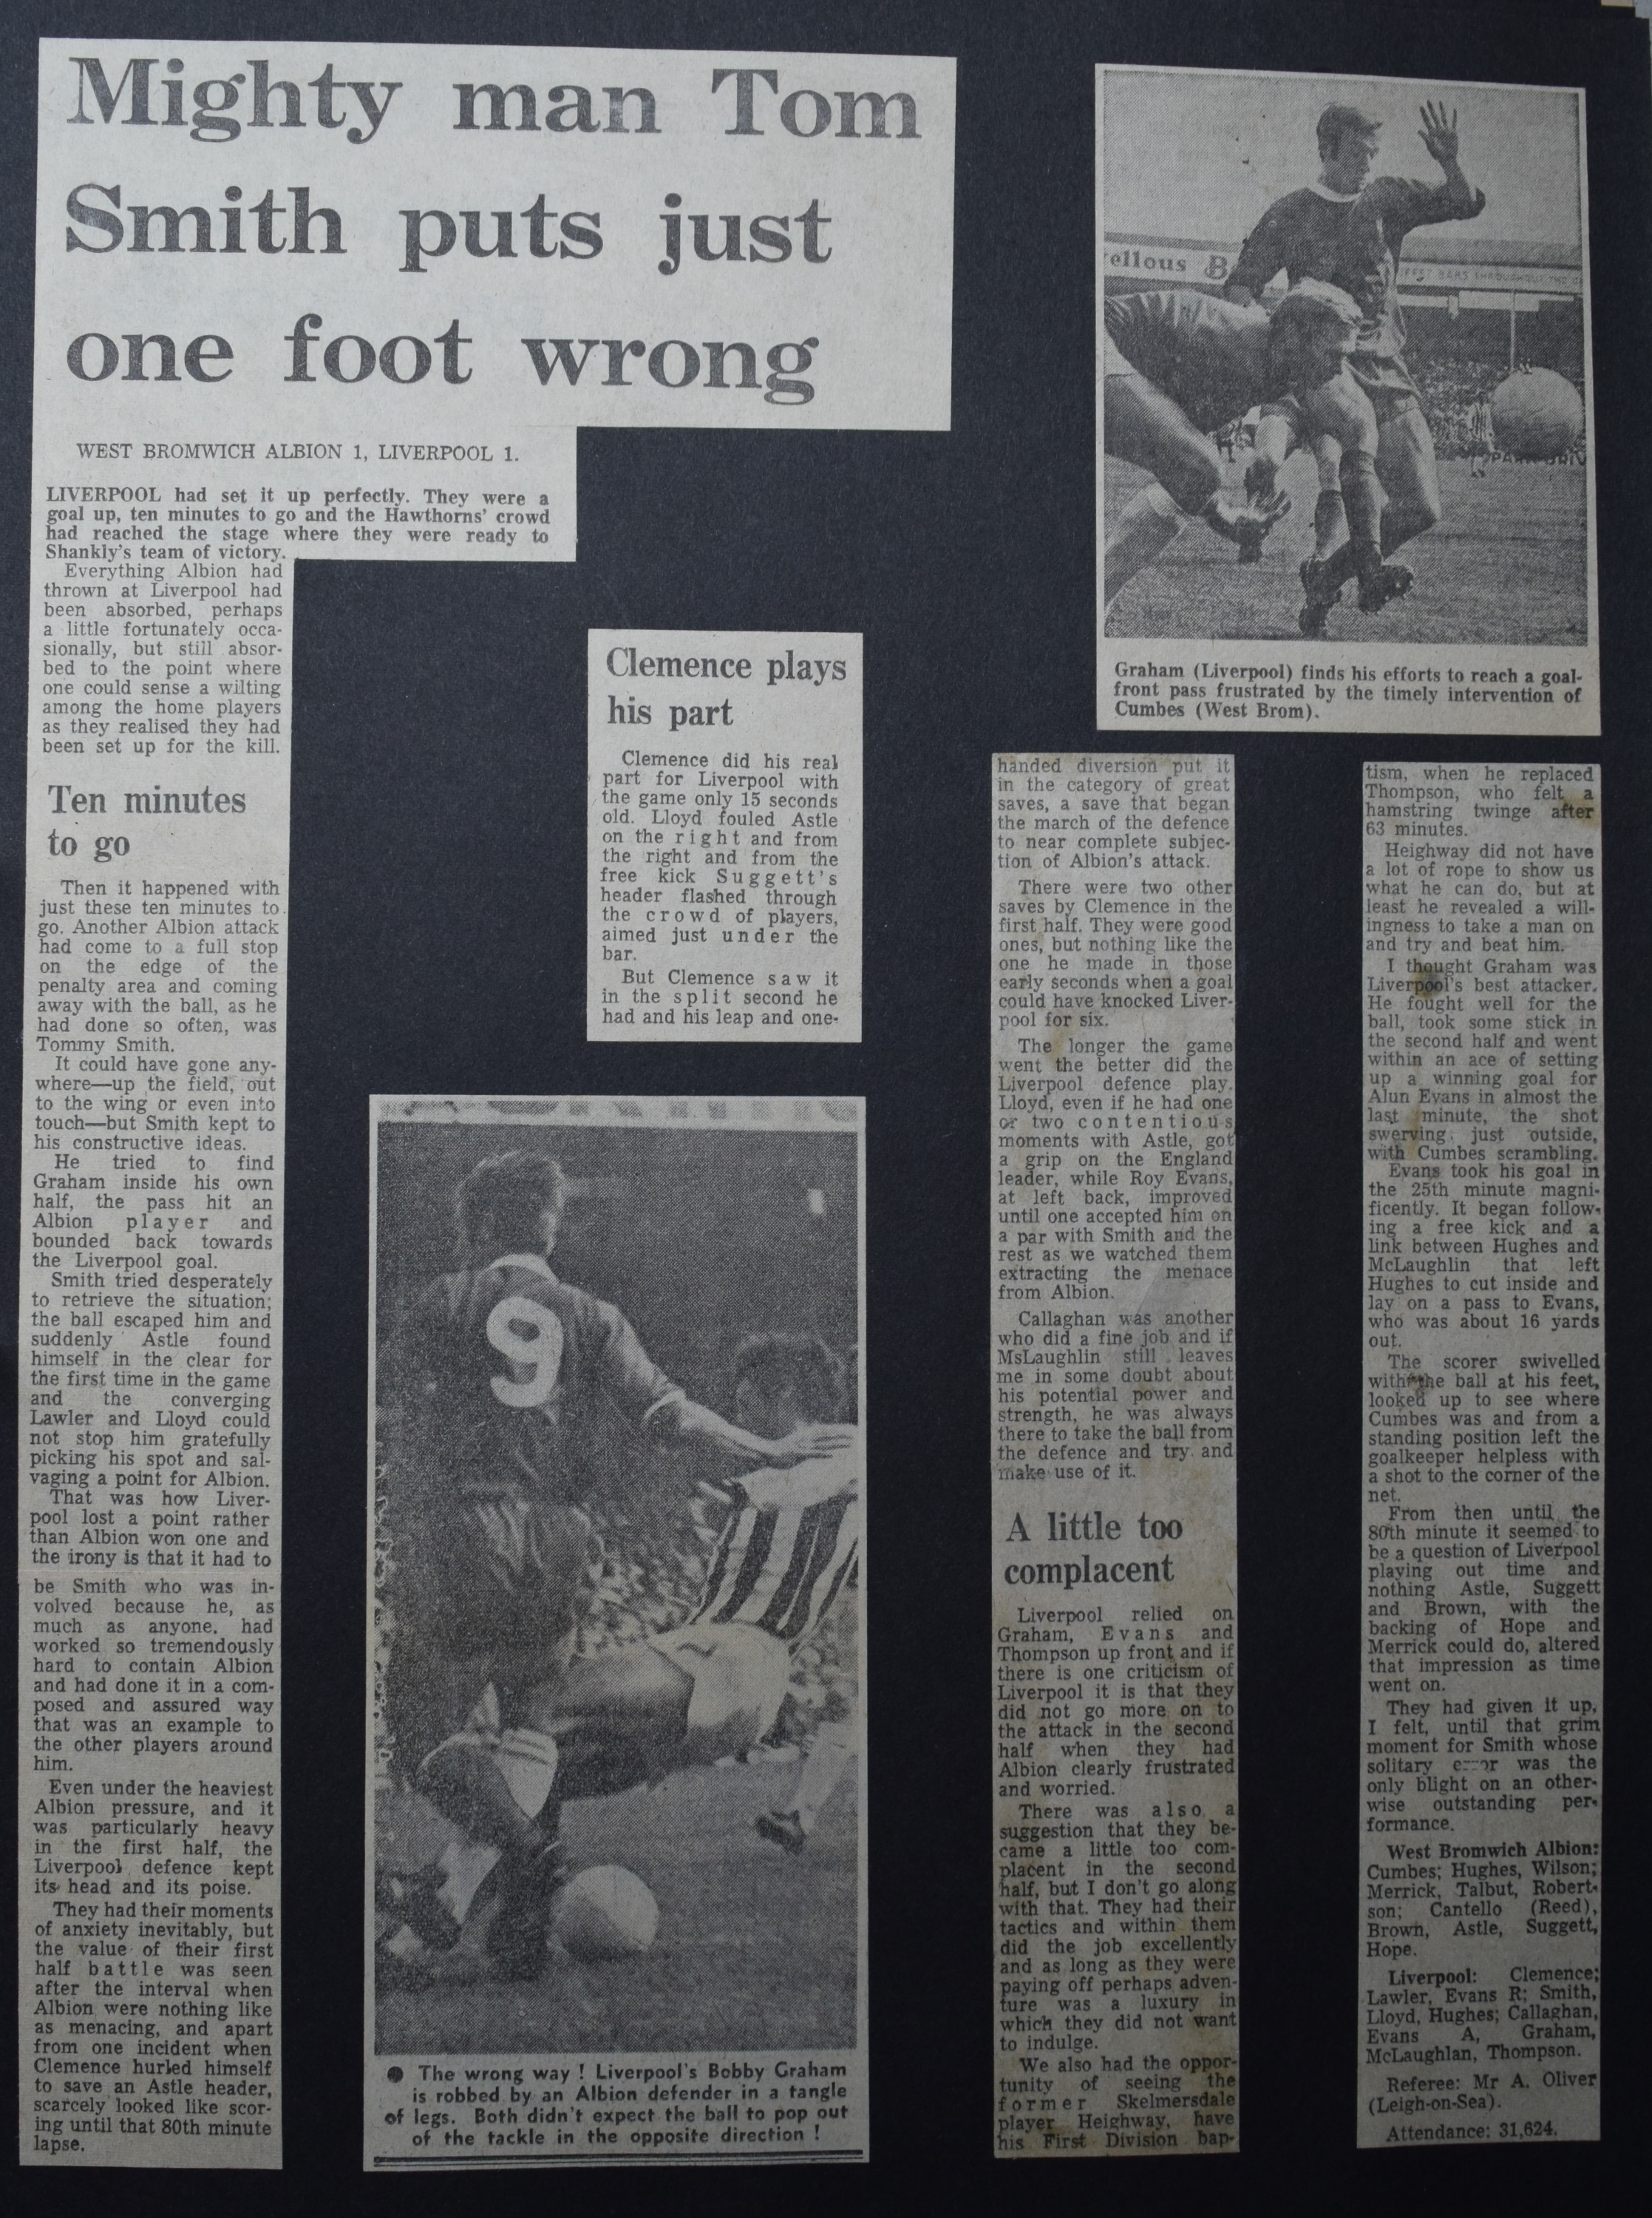 Mighty man Tom Smith just puts one foot wrong! - 29 August 1970